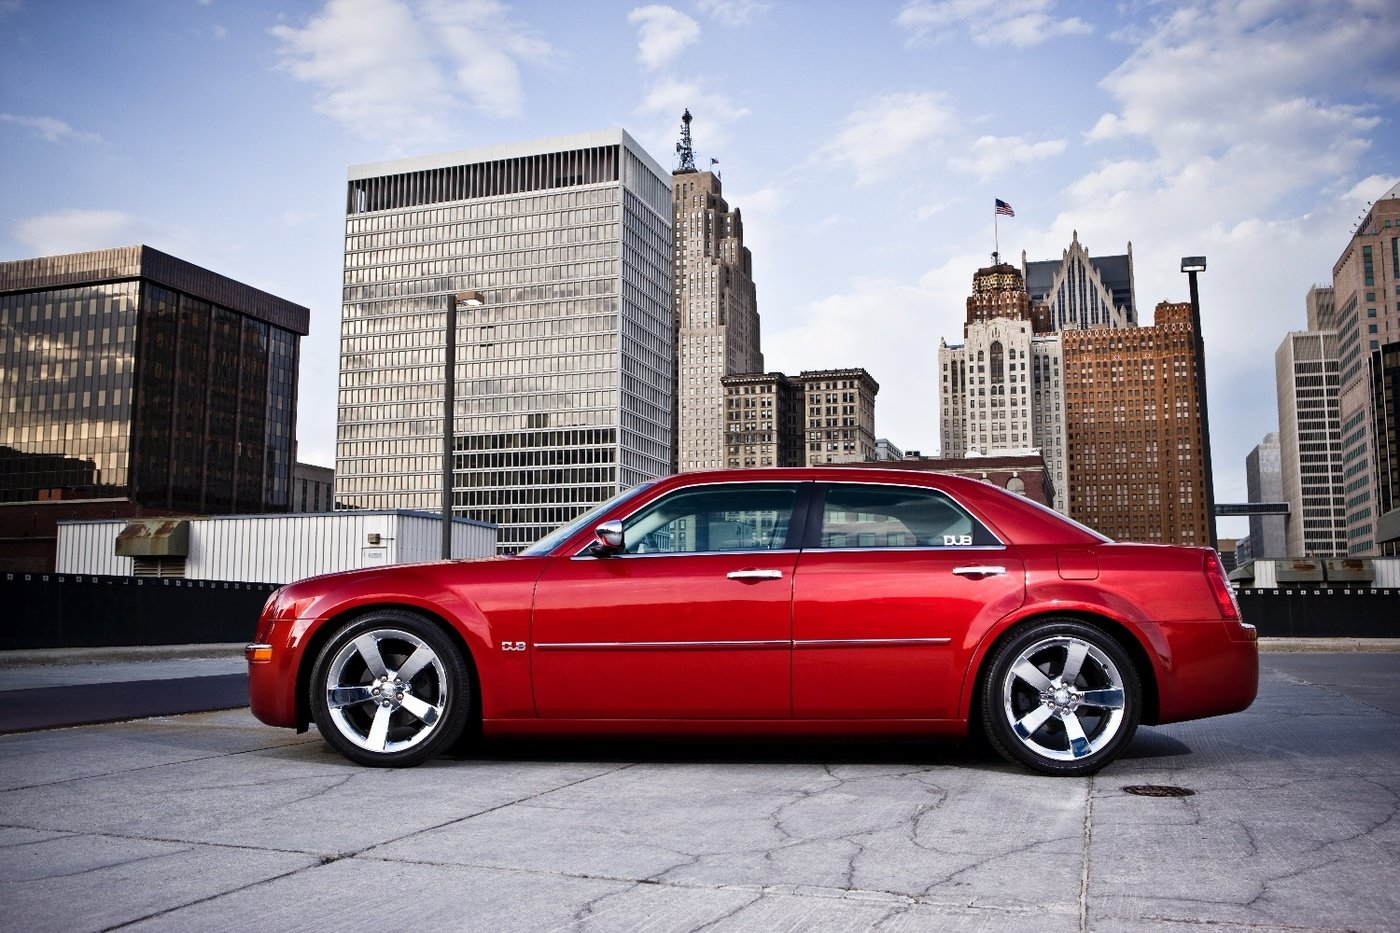 Everything From Location To Retouching Angles The Photos Were Used In Dub Magazine Show 2008 Chrysler 300 Edition